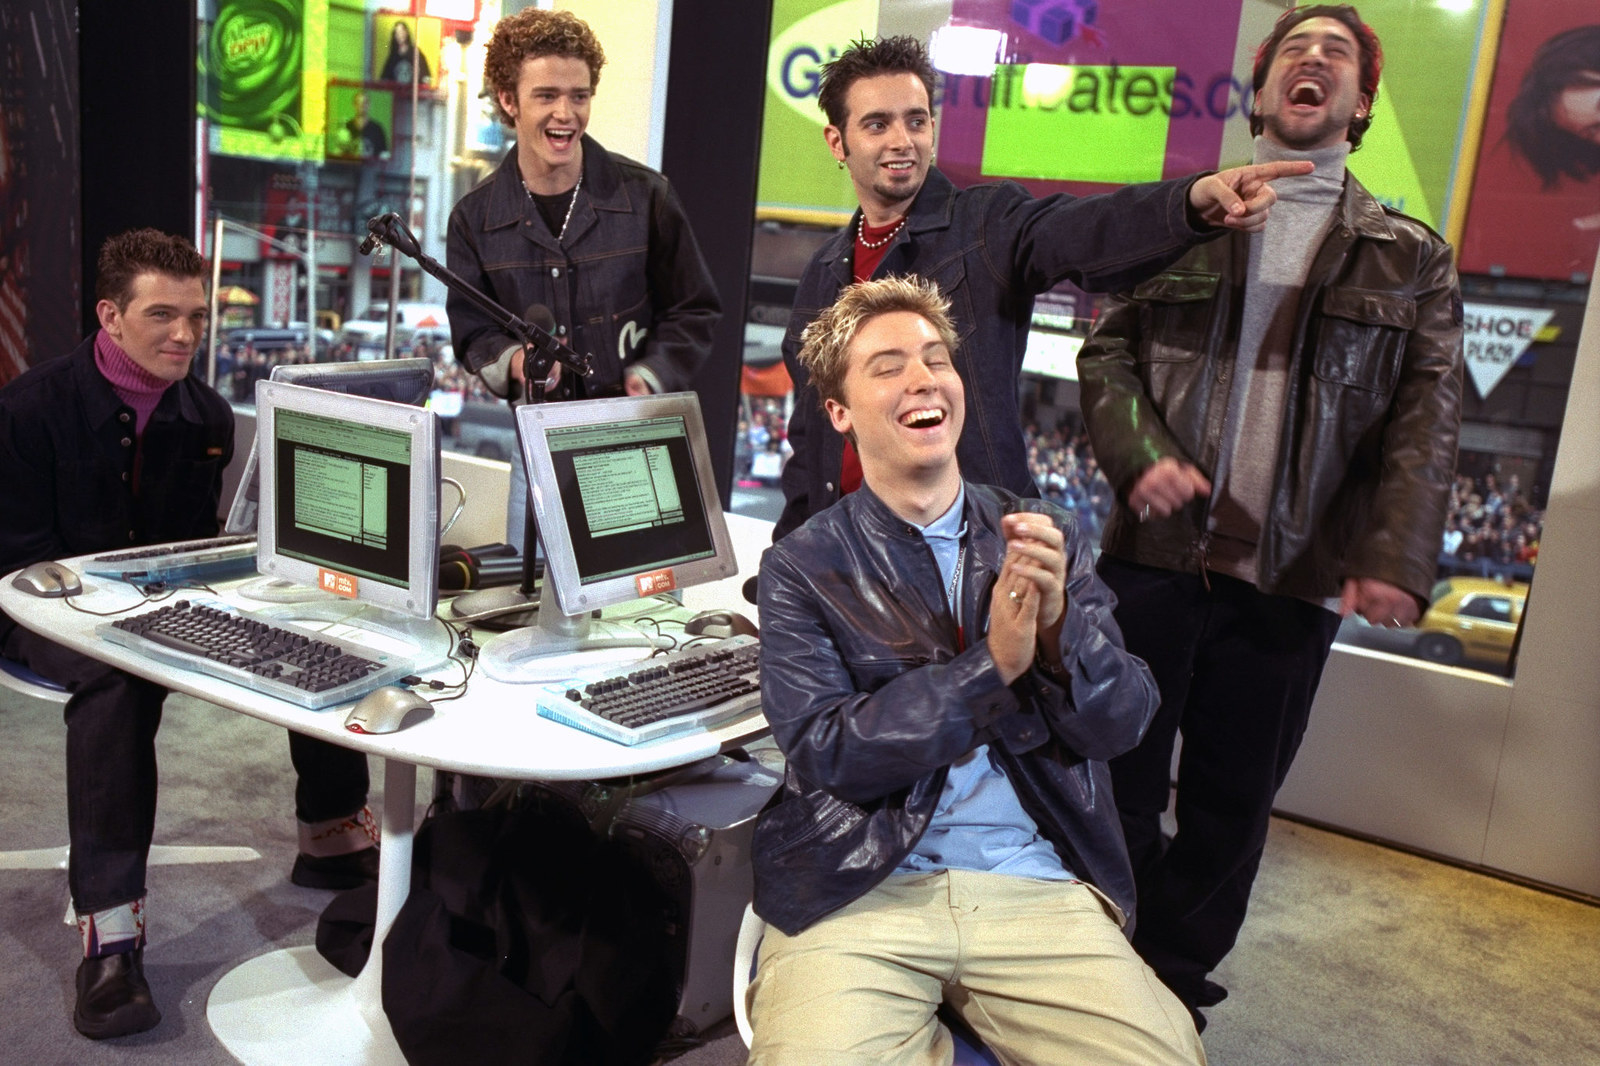 N' SYNC laughing while surrounding desktop computers.